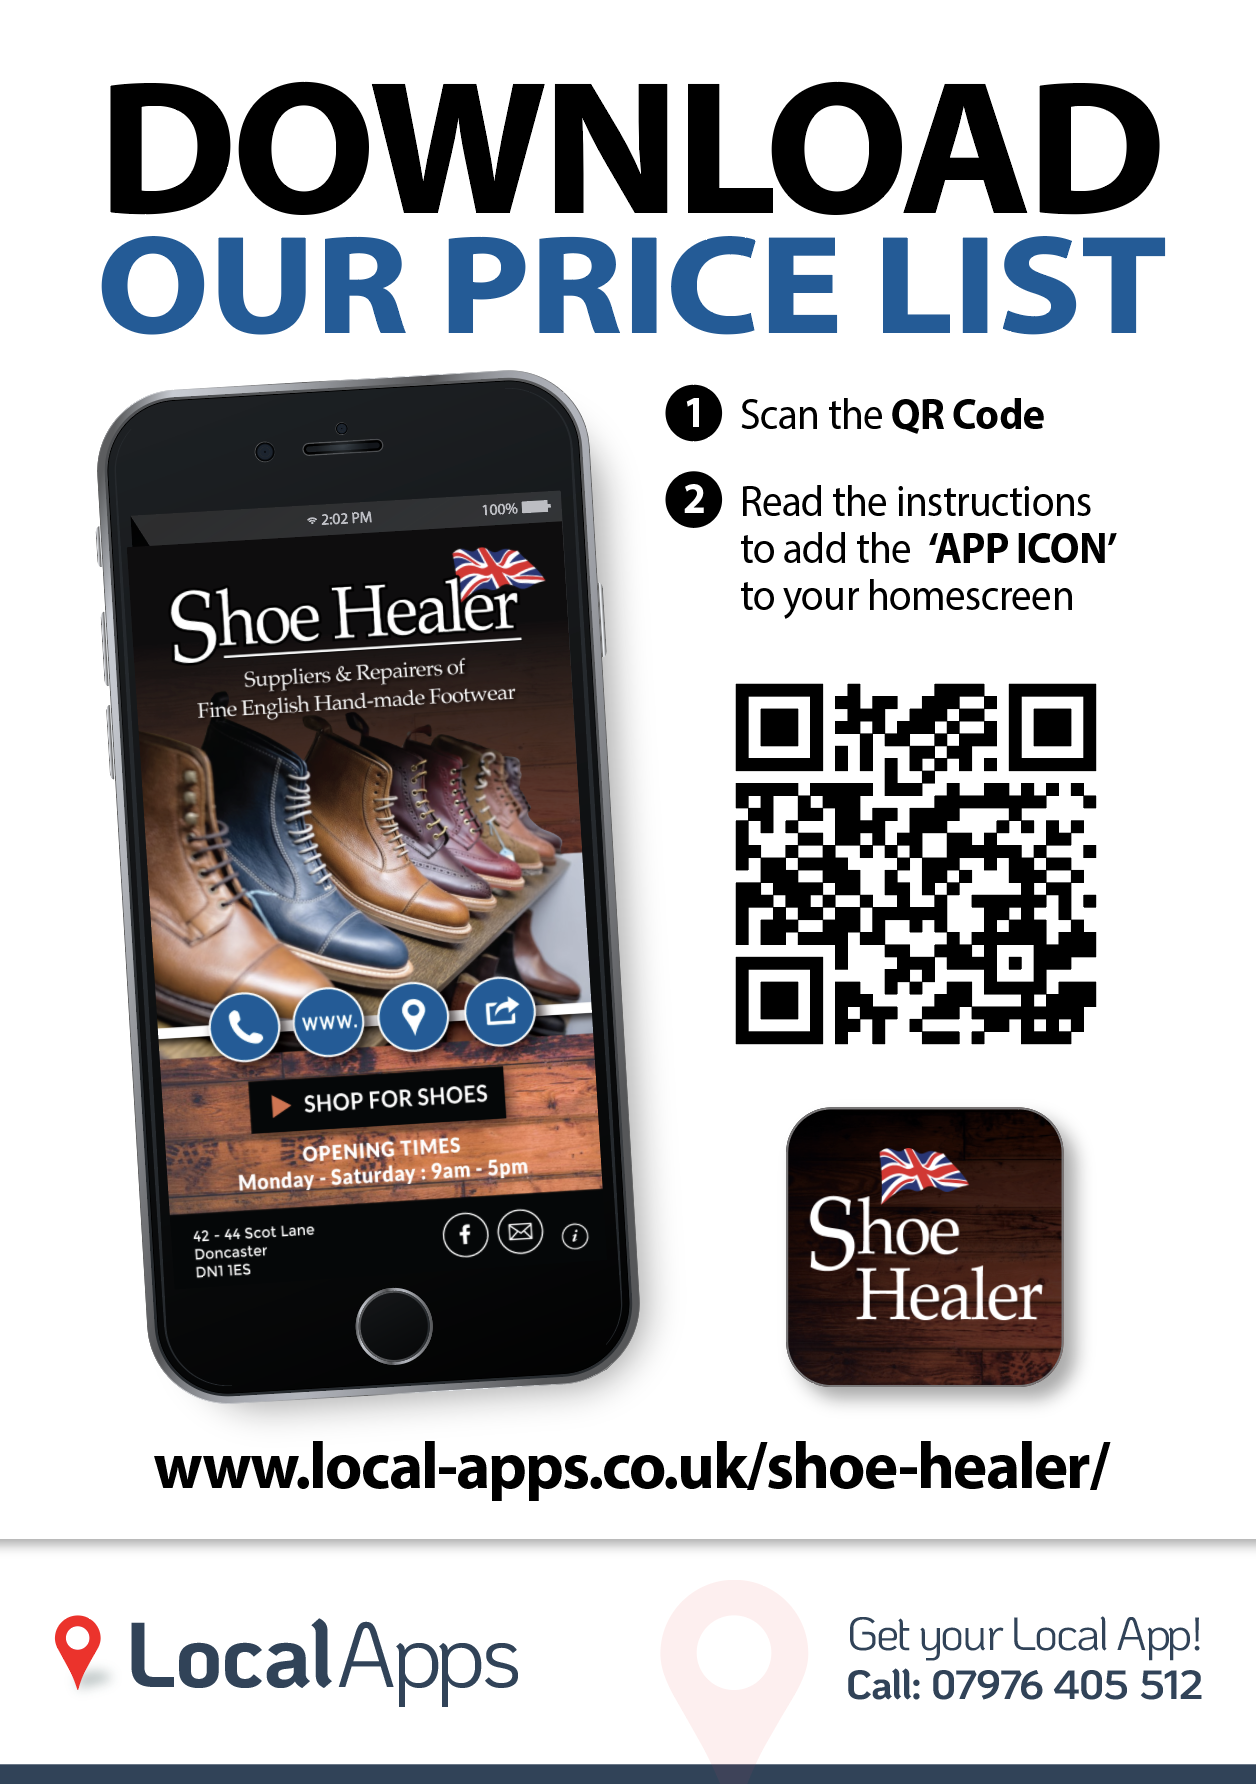 Local Sales Apps >> Shoe Healer Shoe Repairs And Sales 42 44 Scot Lane